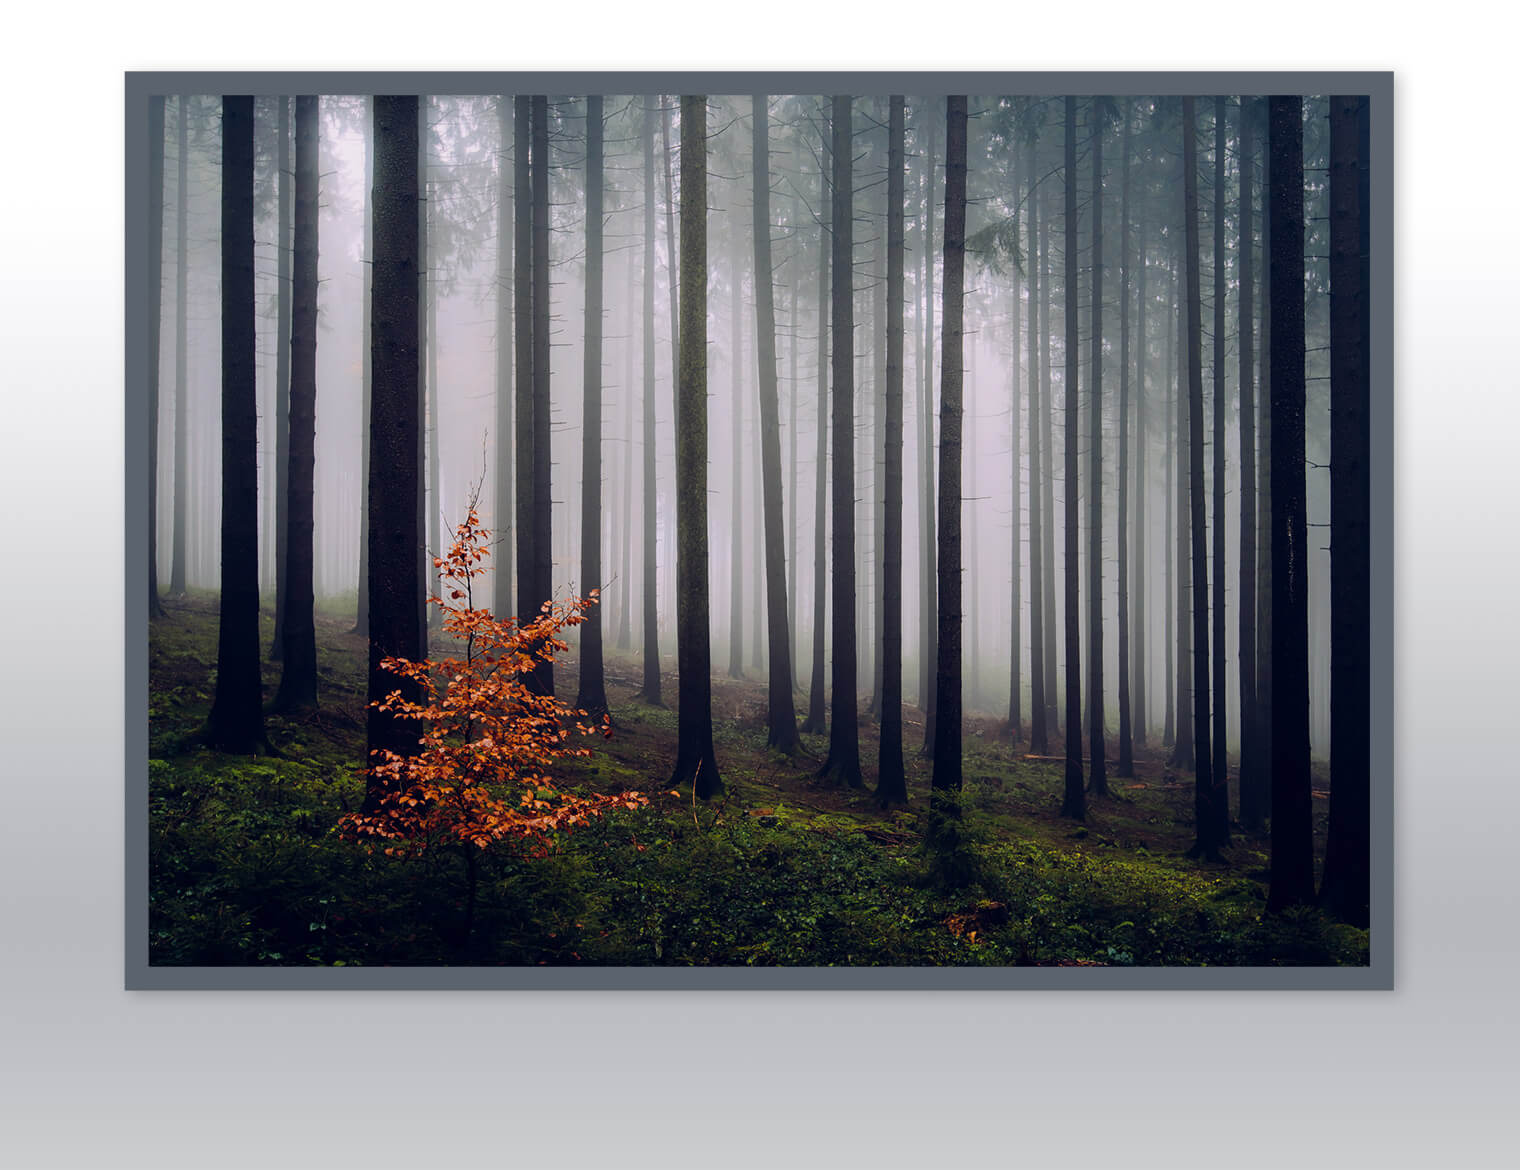 Gallery-quality Fine Art Prints by Northlandscapes